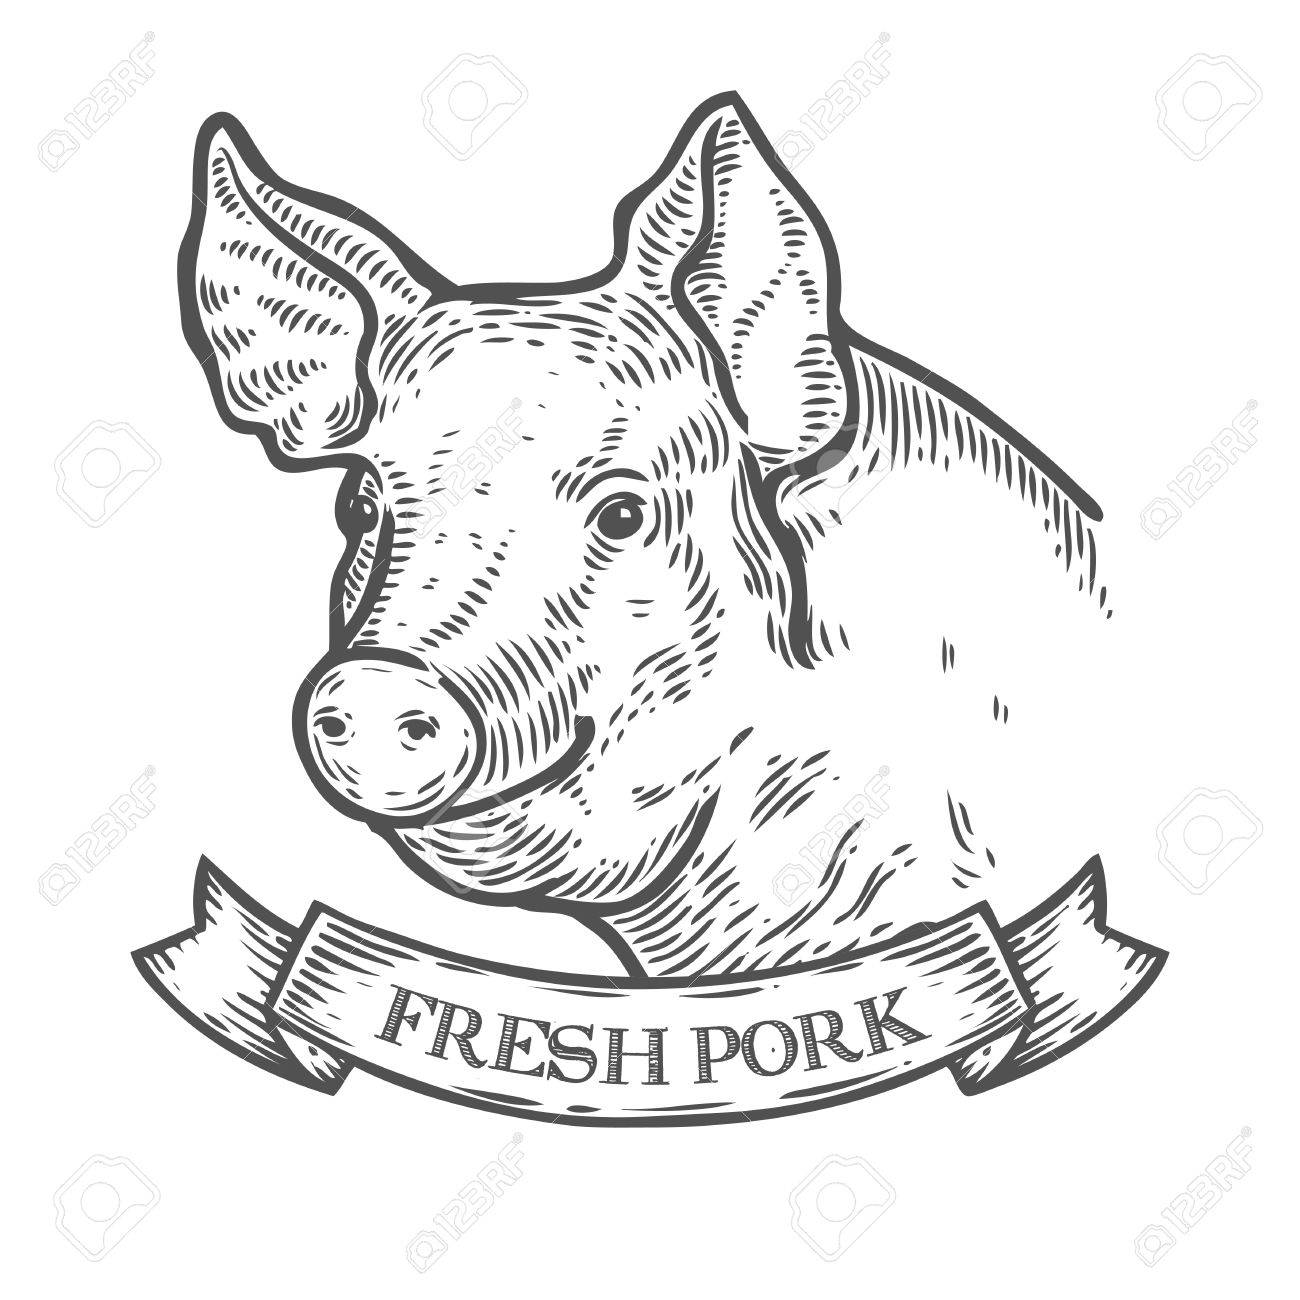 1300x1300 Pig Head, Fresh Pork Organic Meat. Hand Drawn Sketch In A Graphic